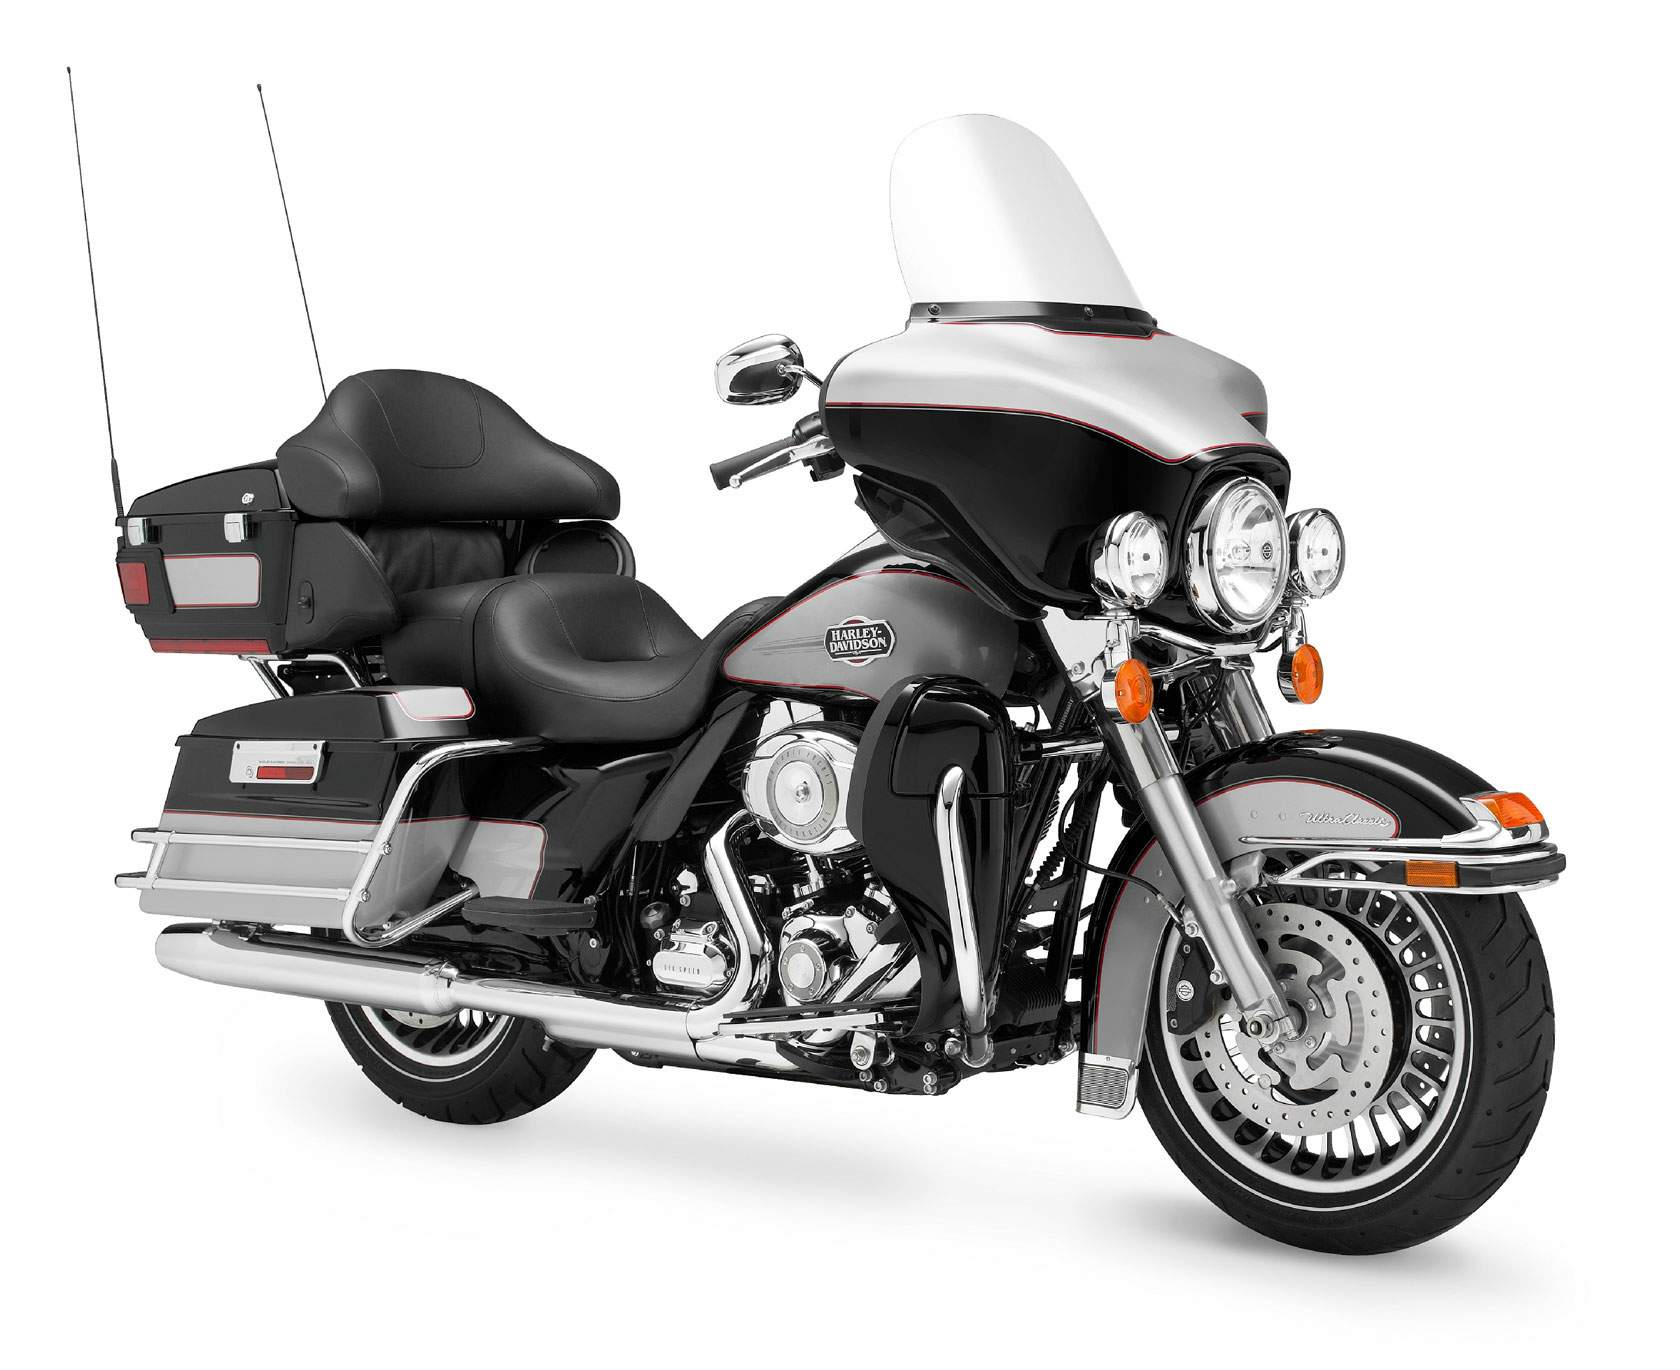 1989 Harley-Davidson 1340 Electra Glide Ultra Classic (reduced effect) #2